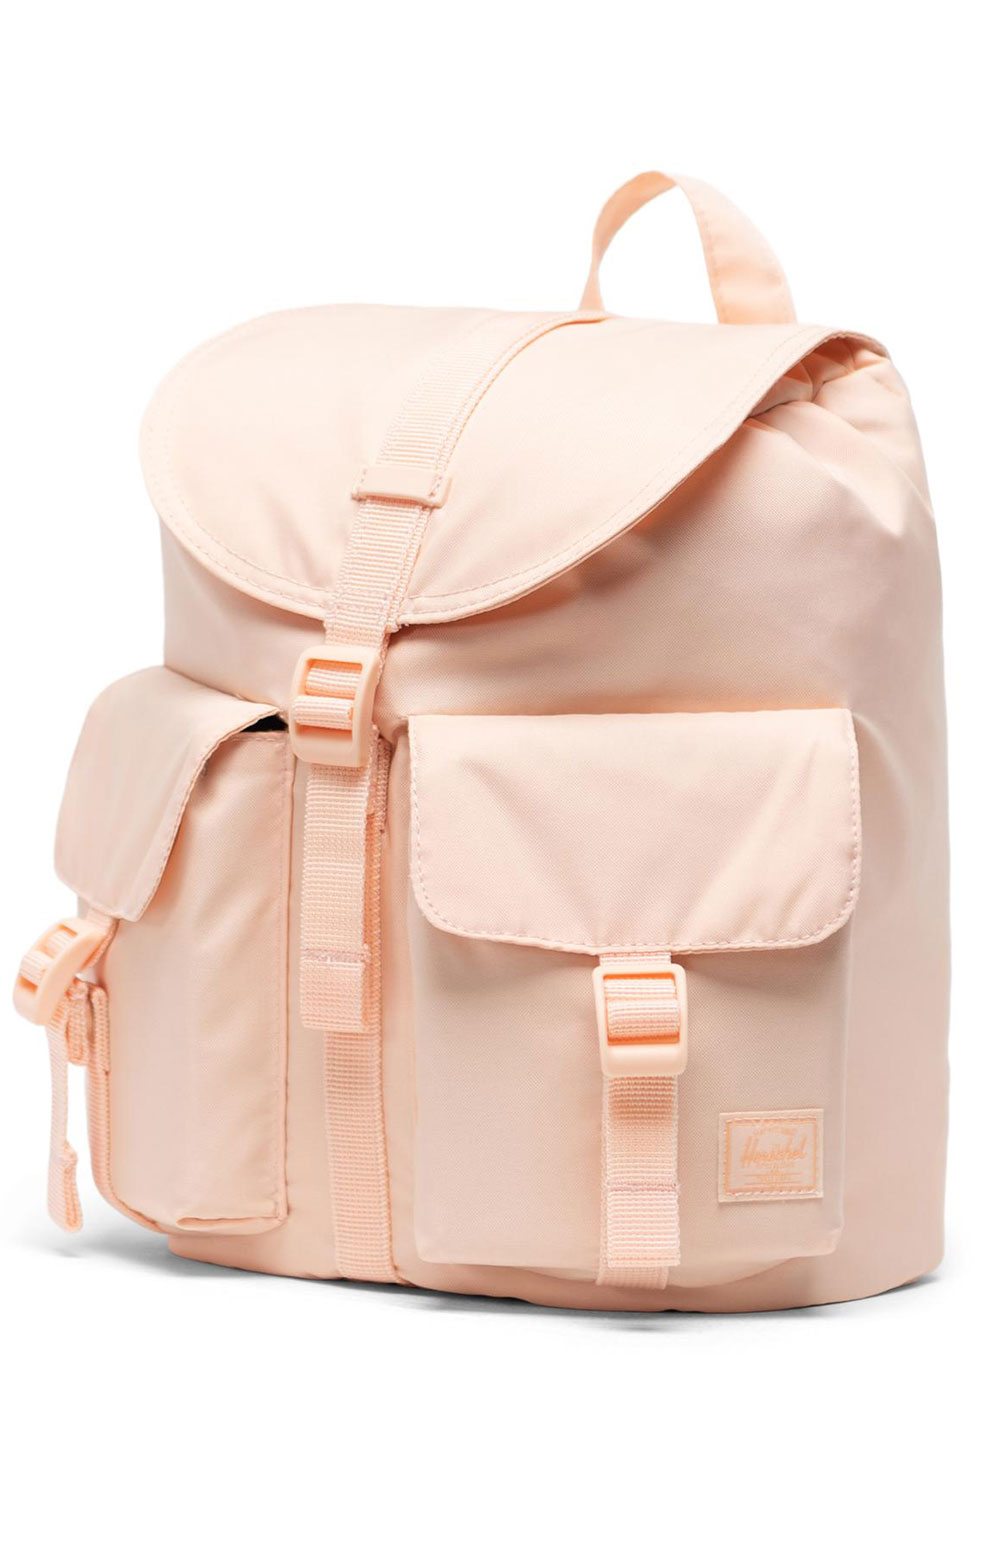 Dawson Backpack Light - Apricot Pastel 3